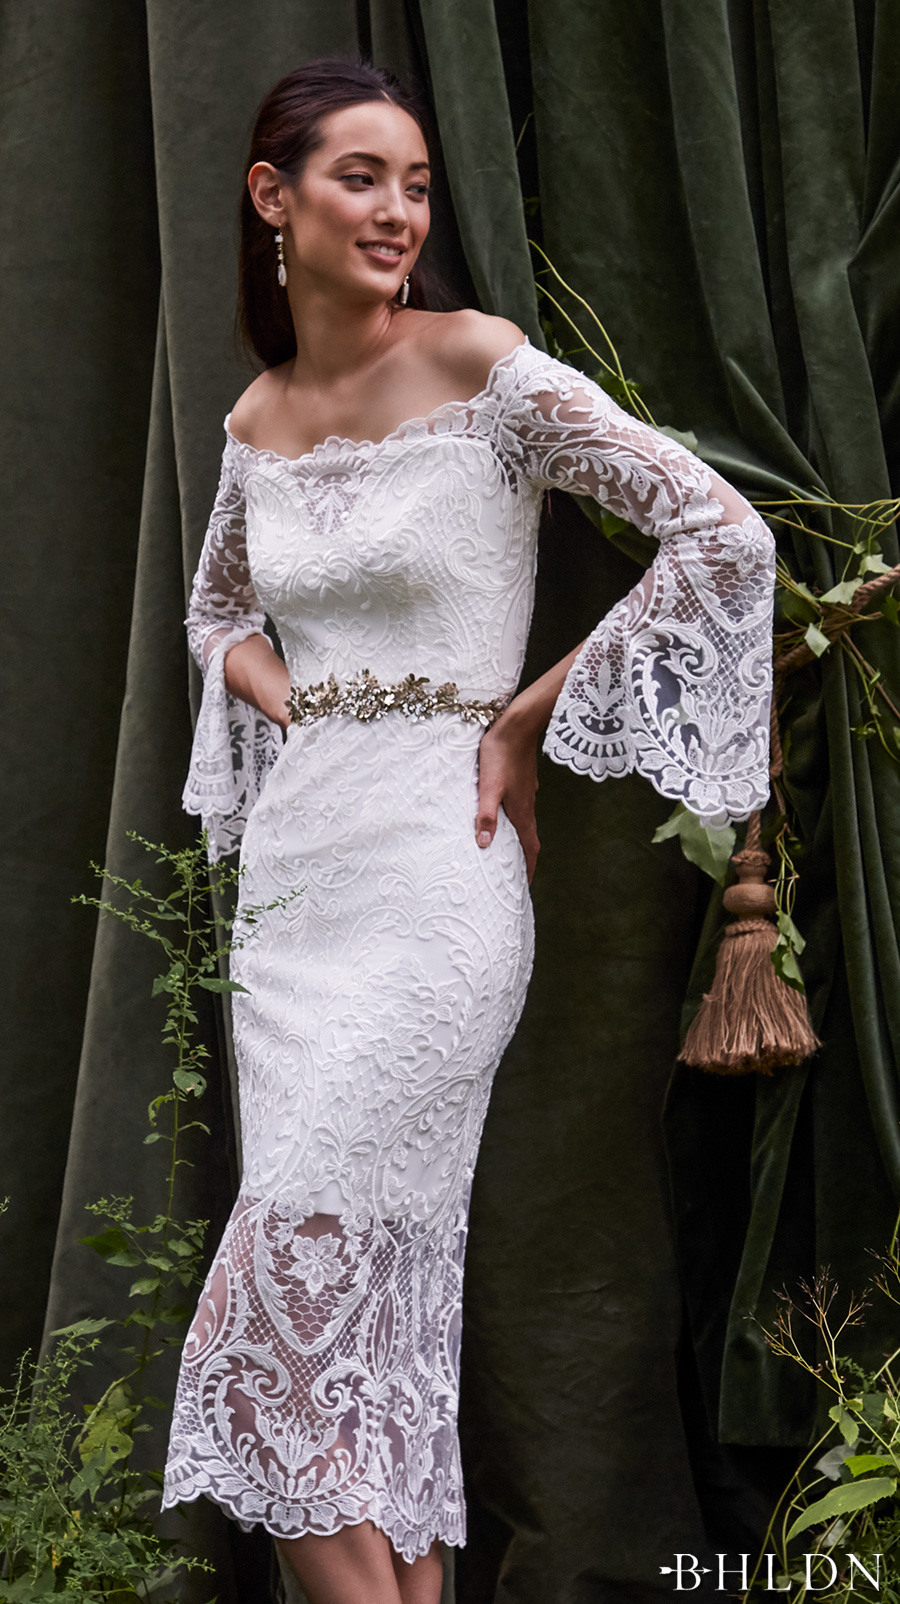 Behind the curtain bhldn s chic fall bridal collection for Long straight wedding dresses